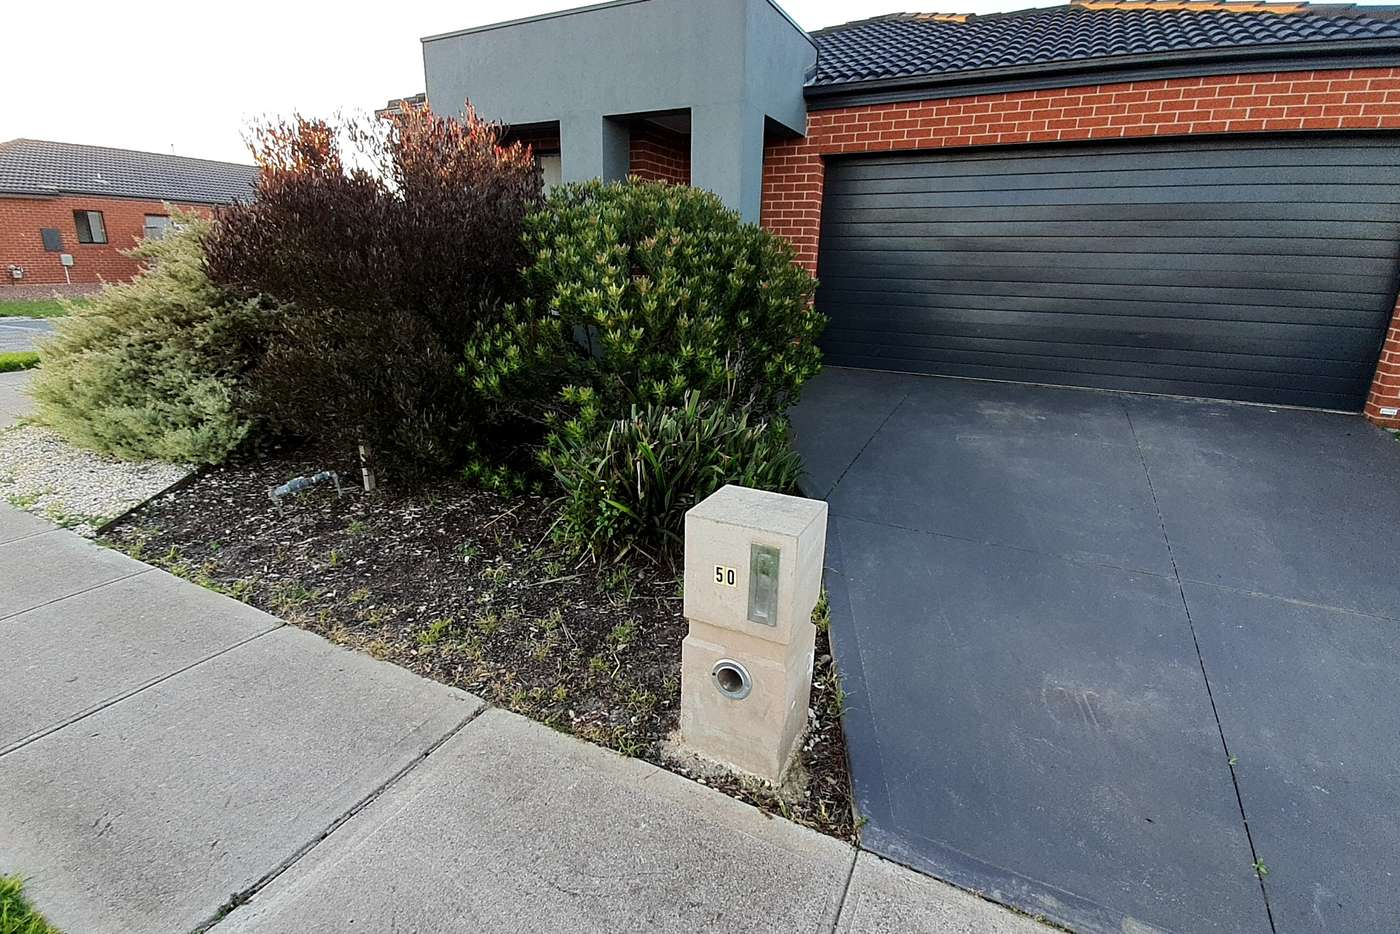 Main view of Homely house listing, 50 Spectacle Crescent, Point Cook VIC 3030